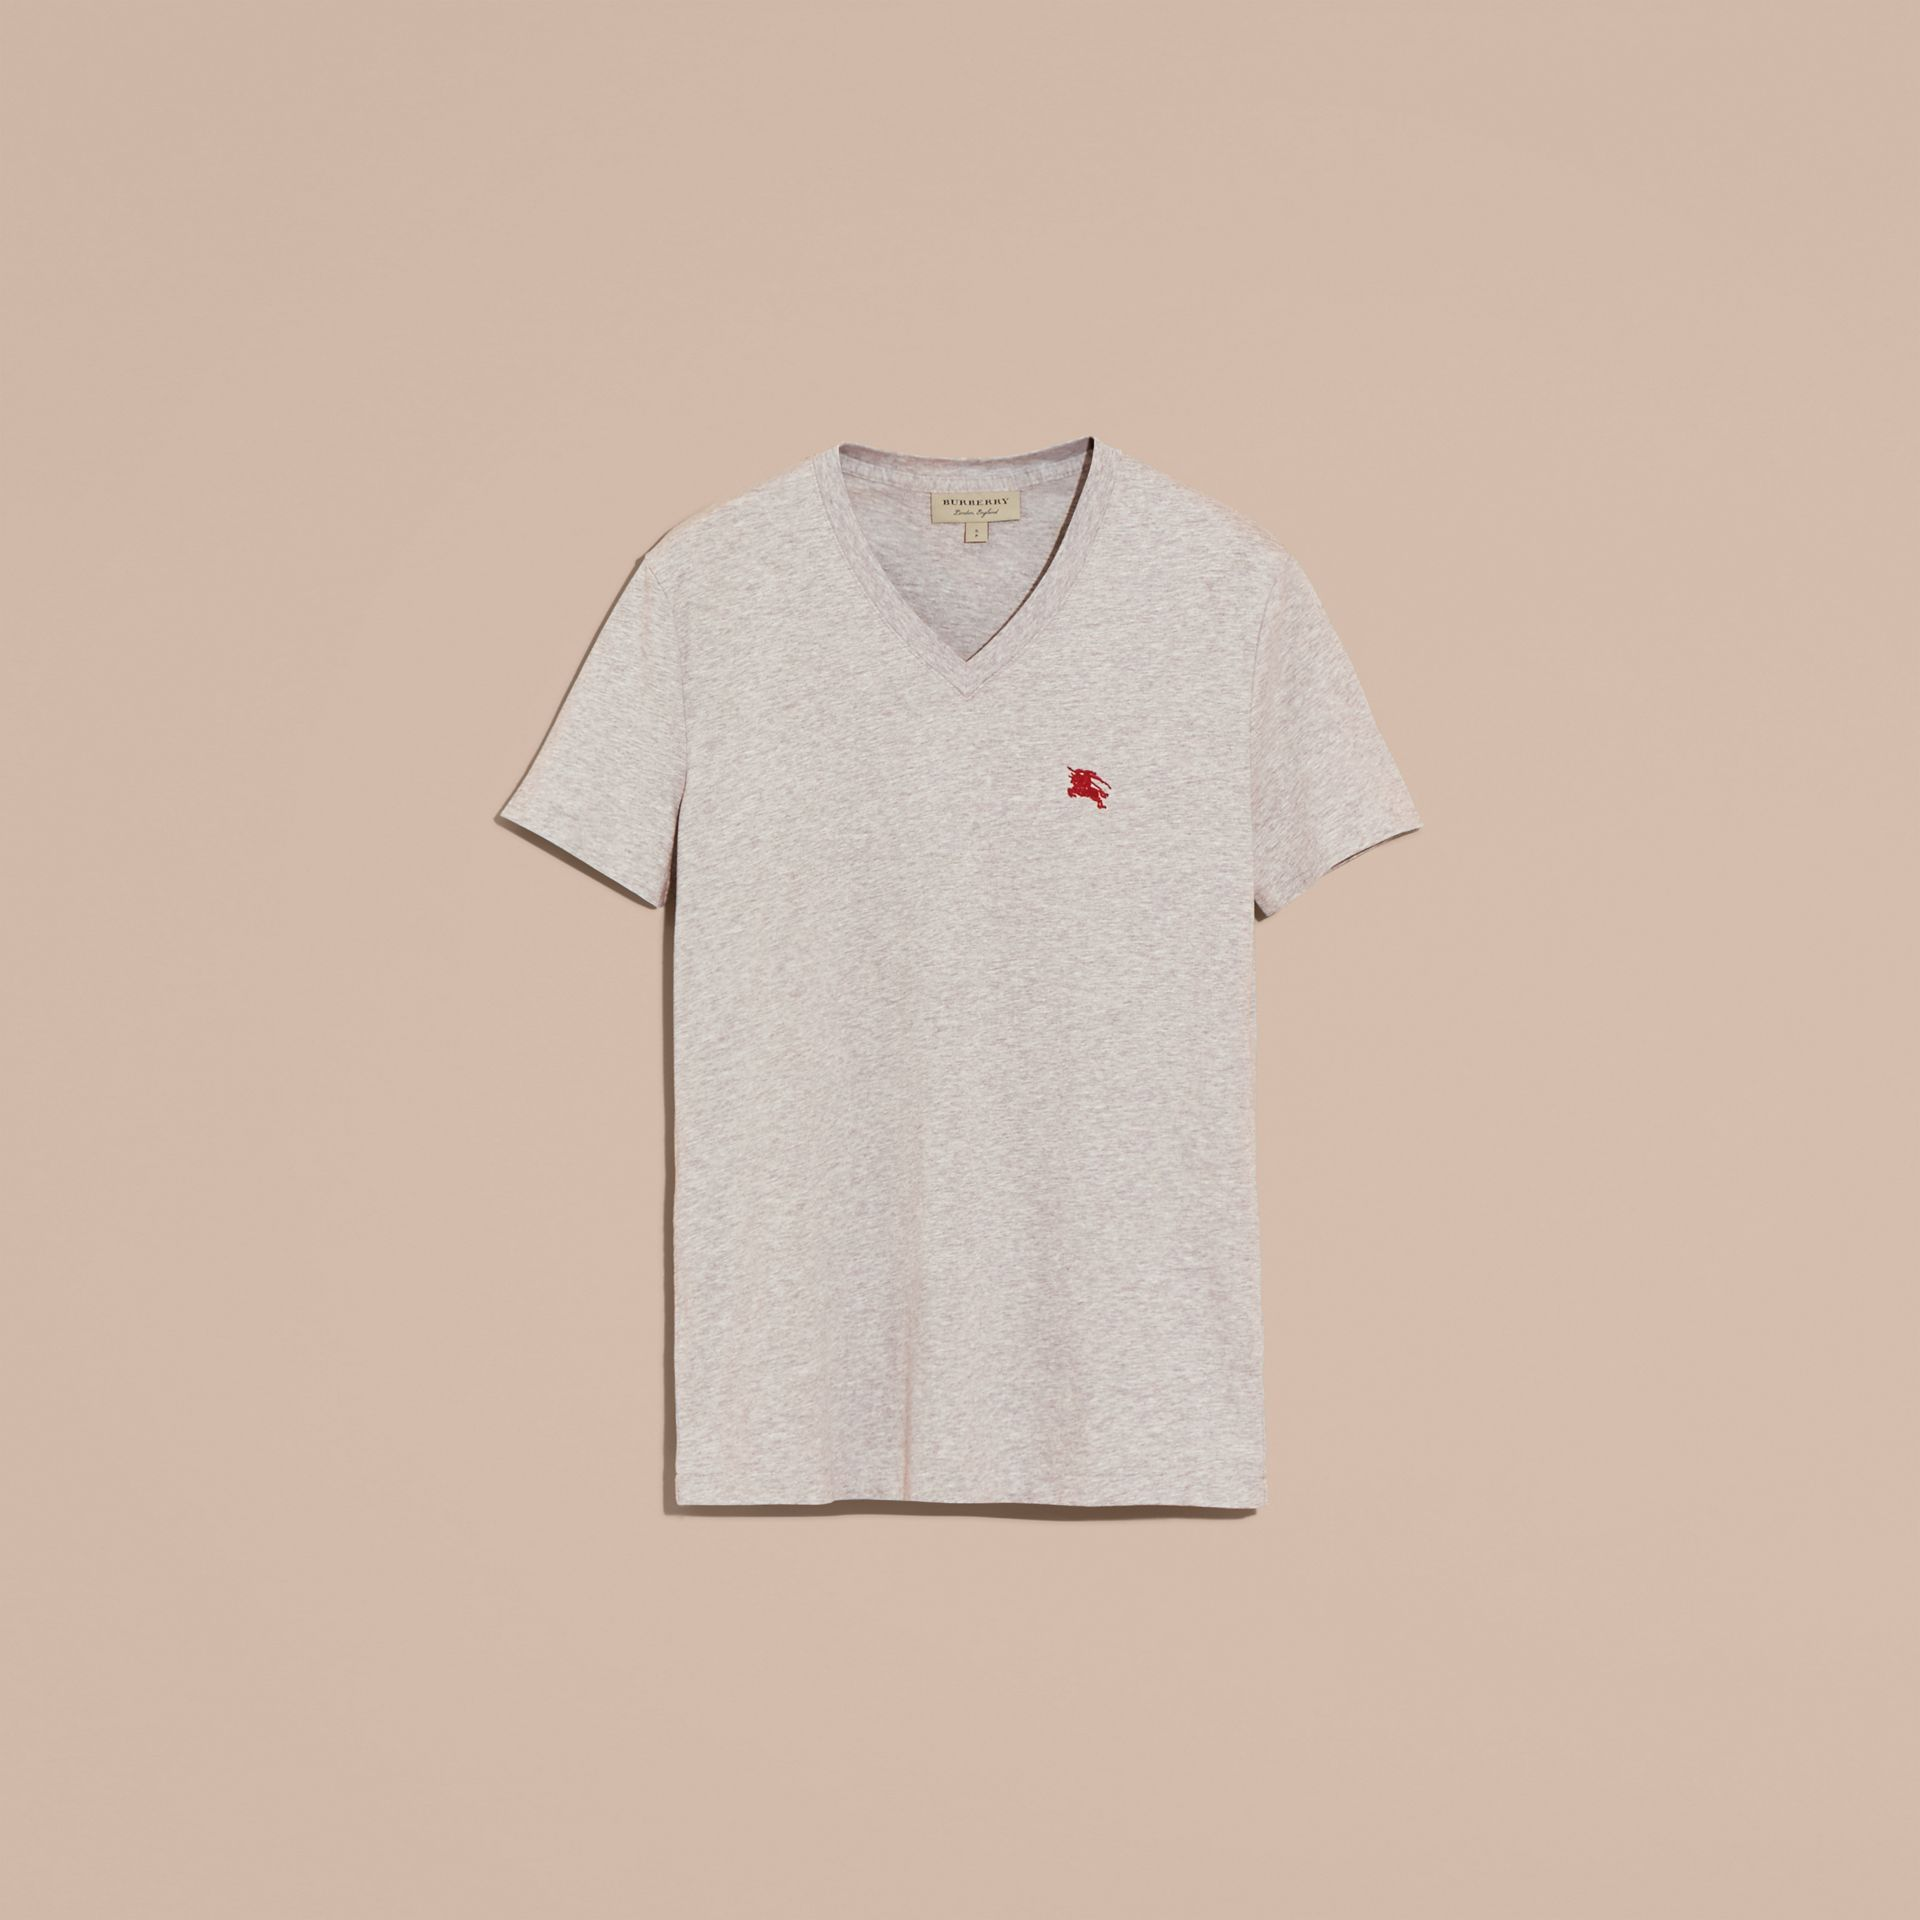 Cotton V-neck T-shirt in Pale Grey Melange - Men | Burberry - gallery image 4